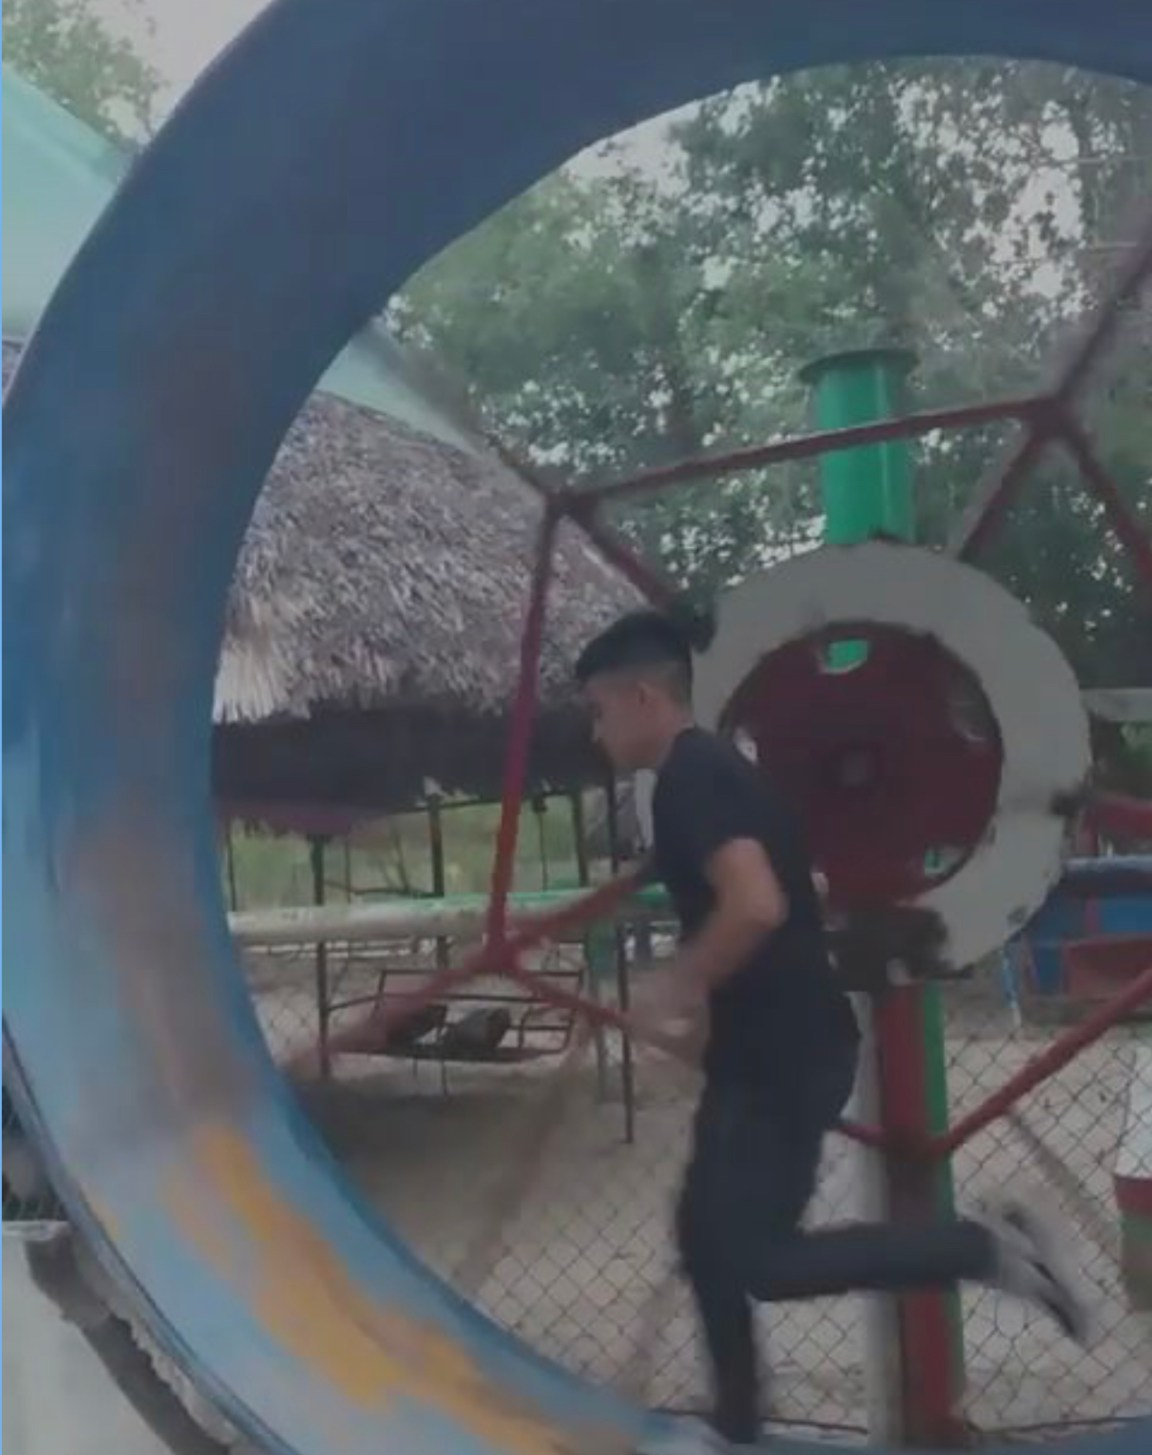 Watch the Human Hamster Till the End